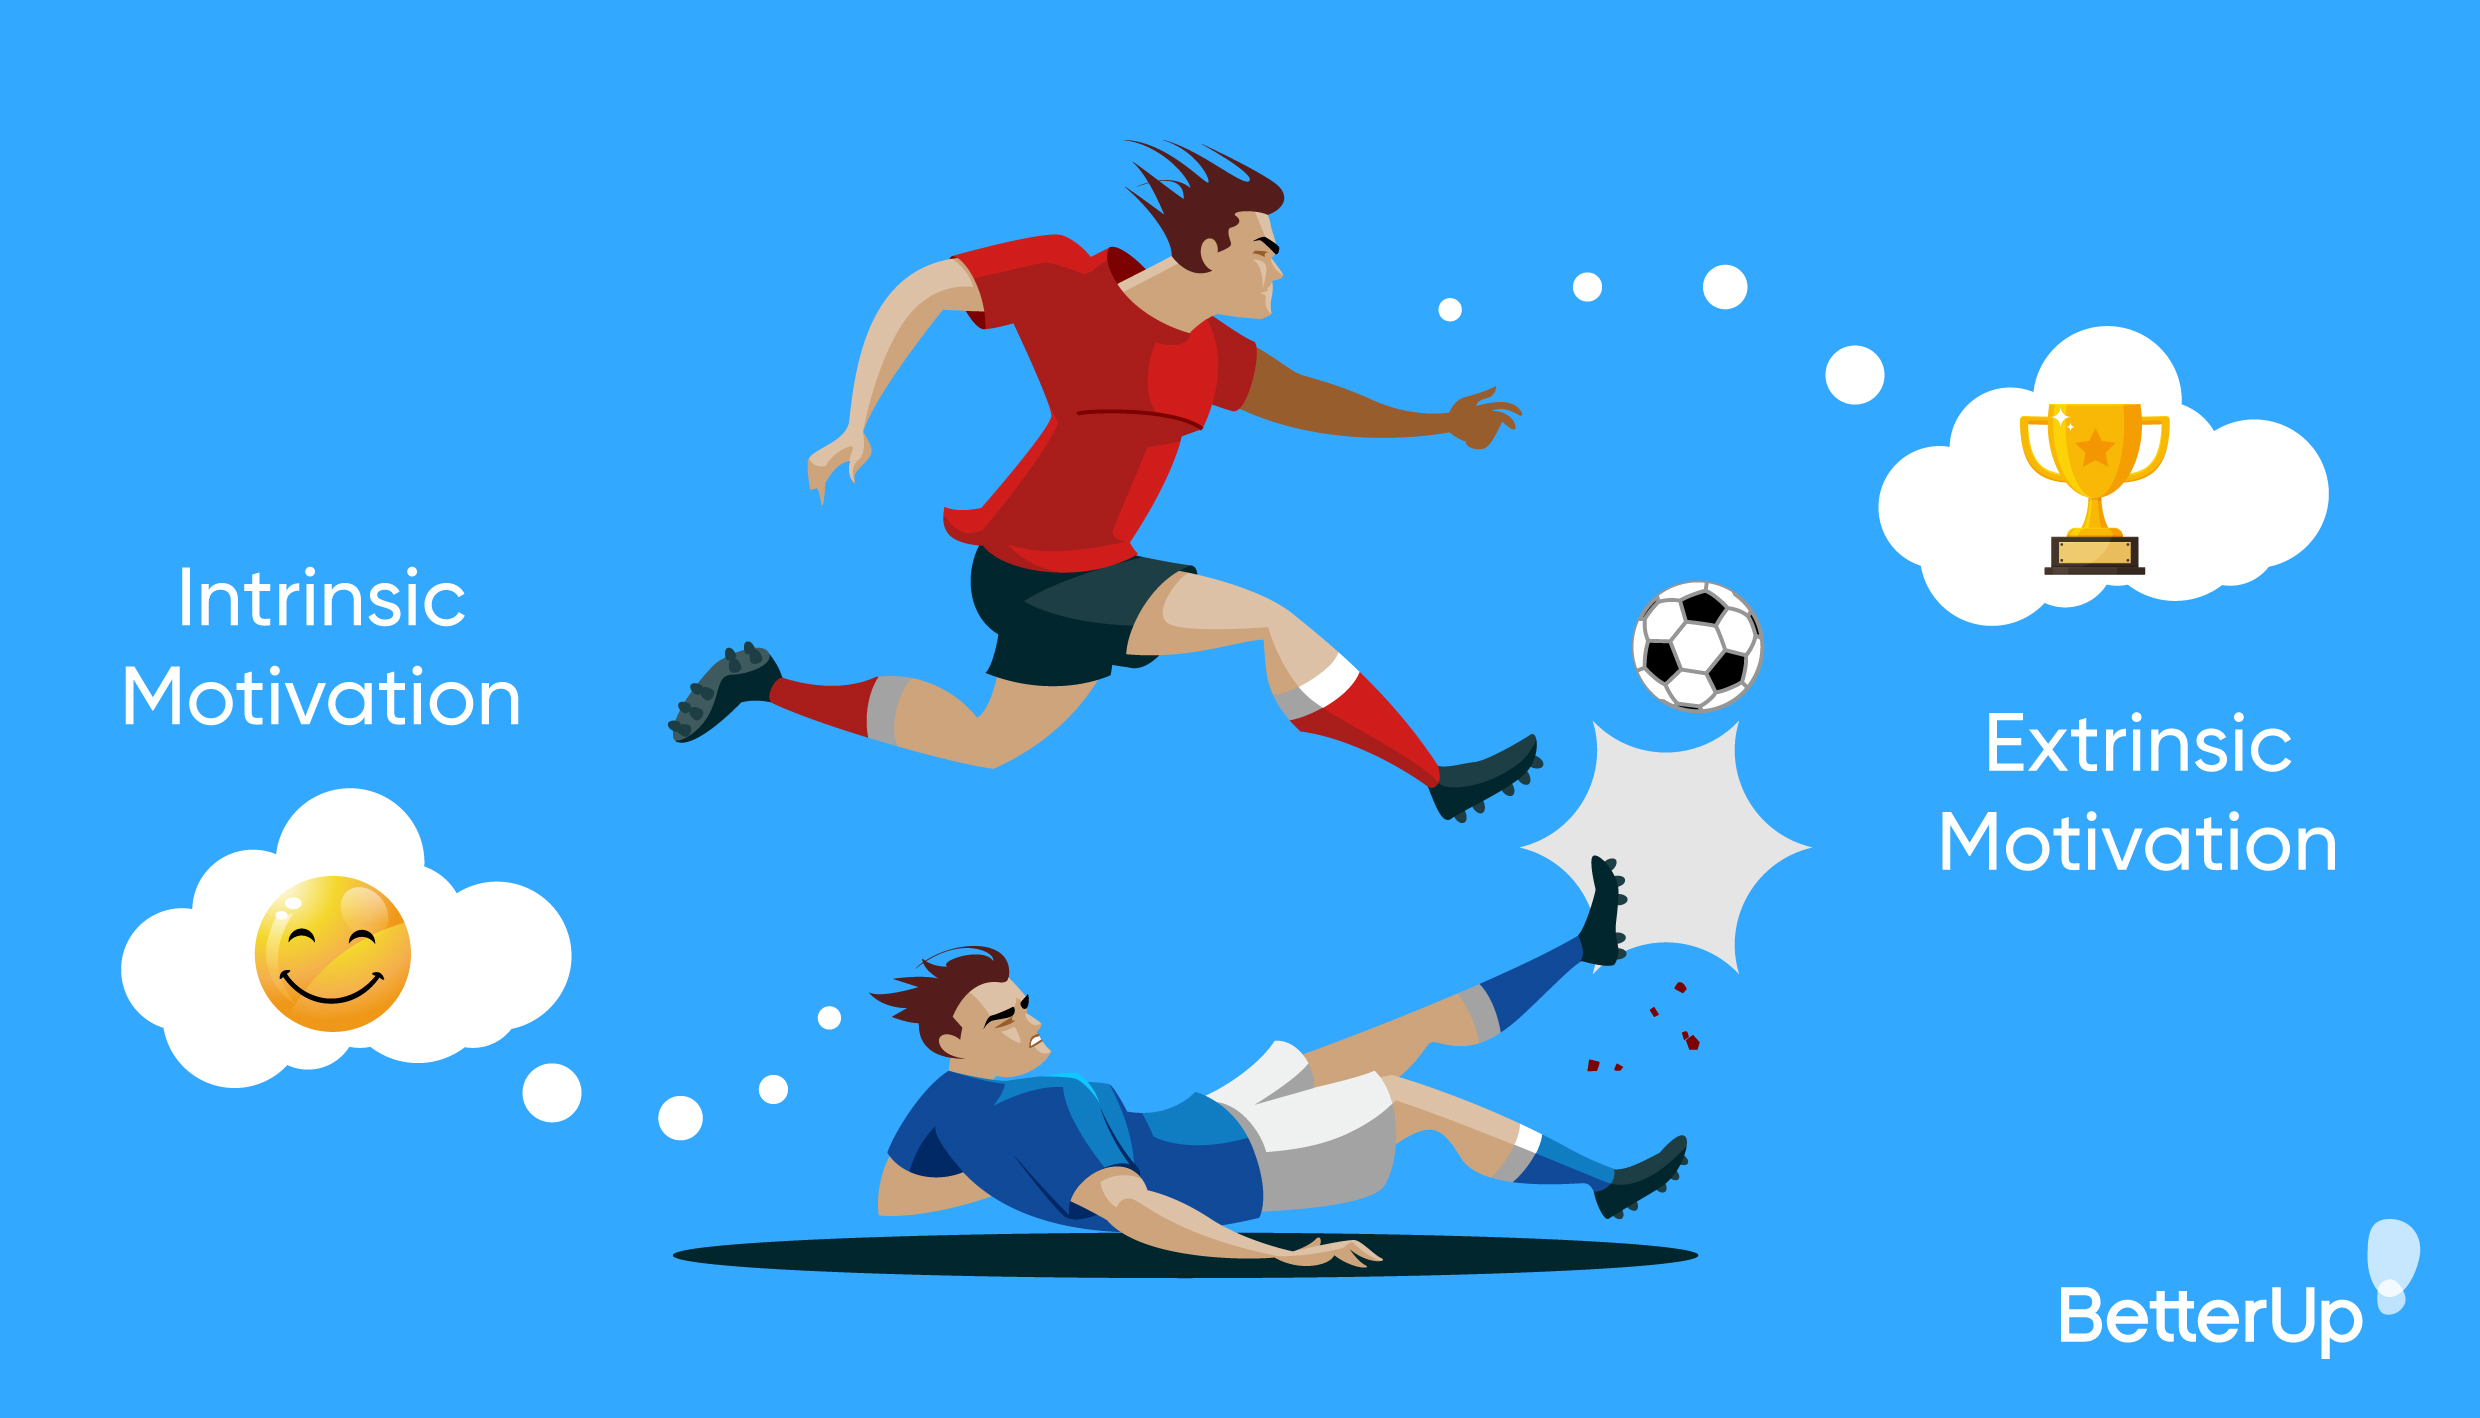 Two kids playing soccer demonstrating intrinsic and extrinsic motivation.